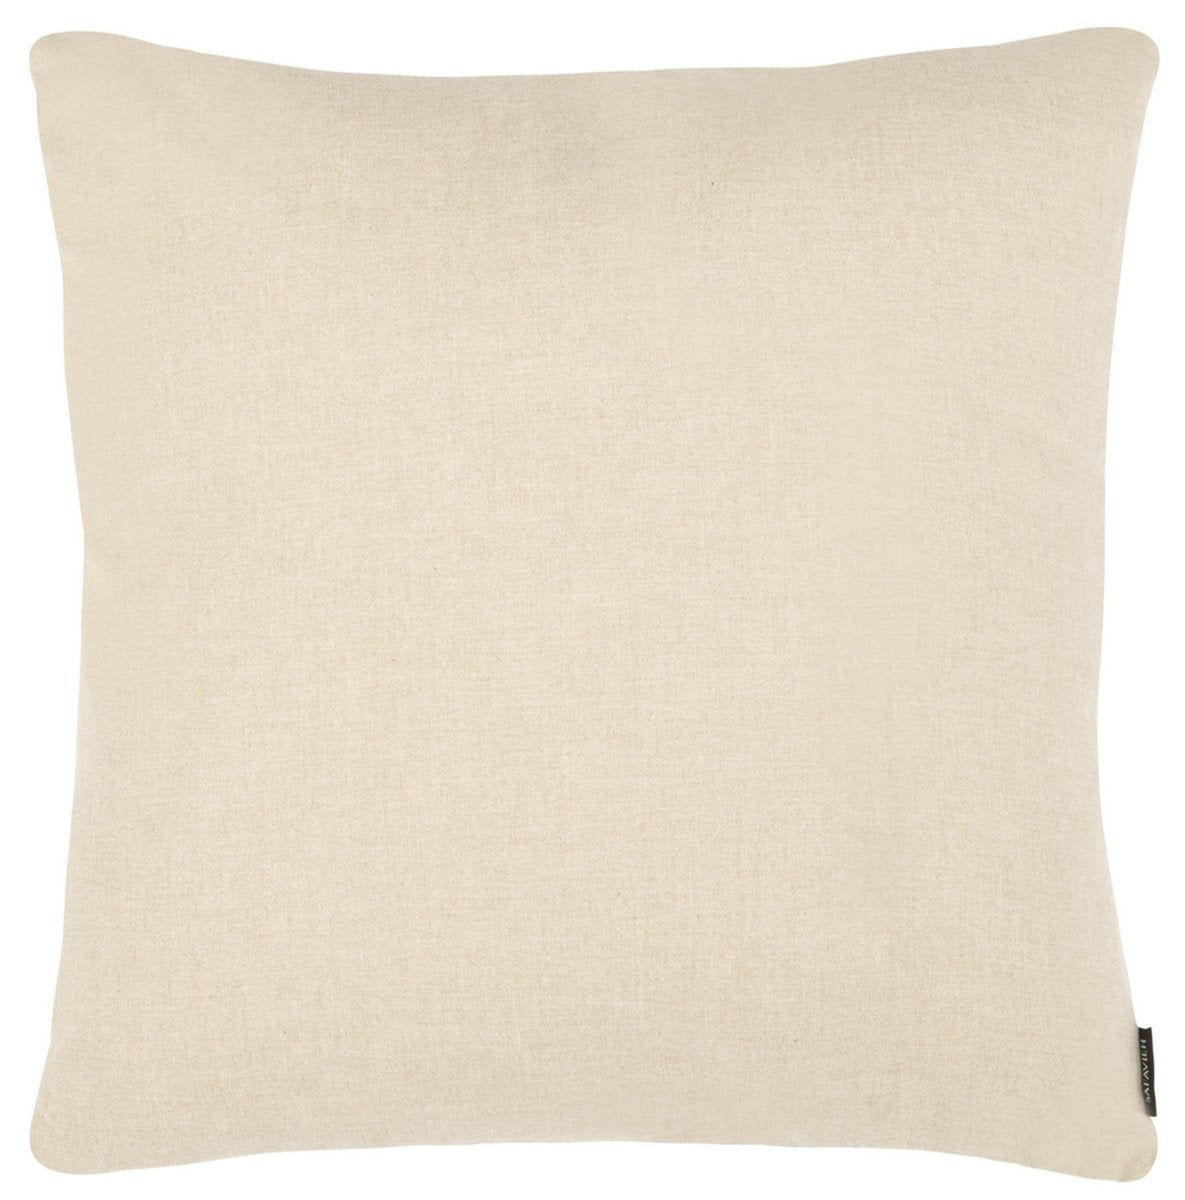 Joslyn Pillow.